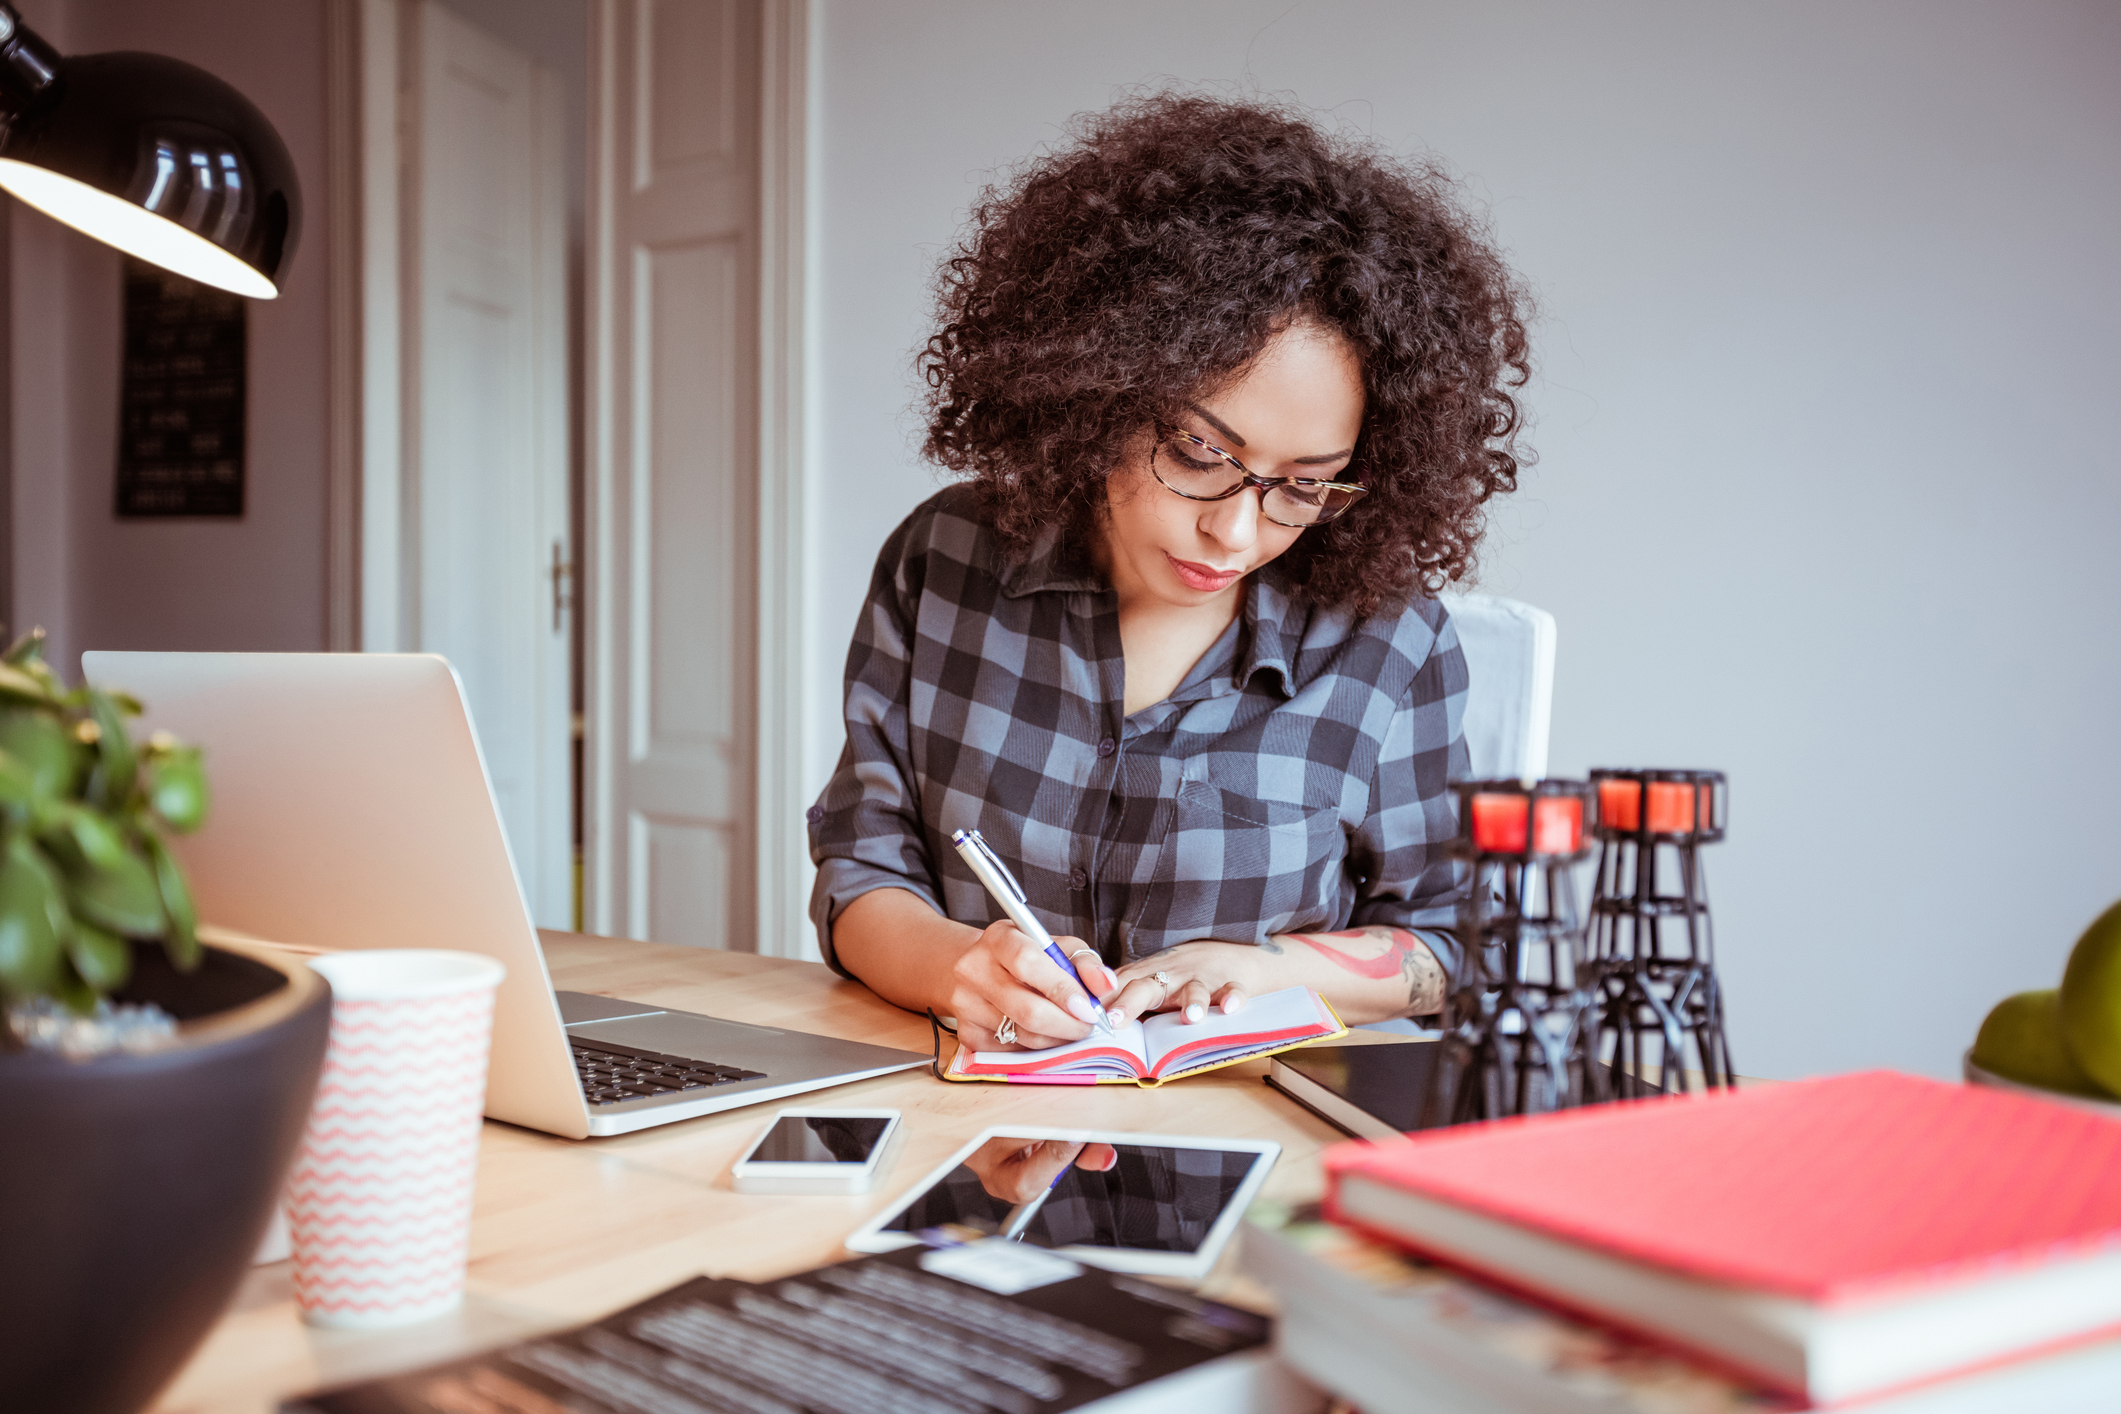 Working too hard is wrecking your heart, says new study